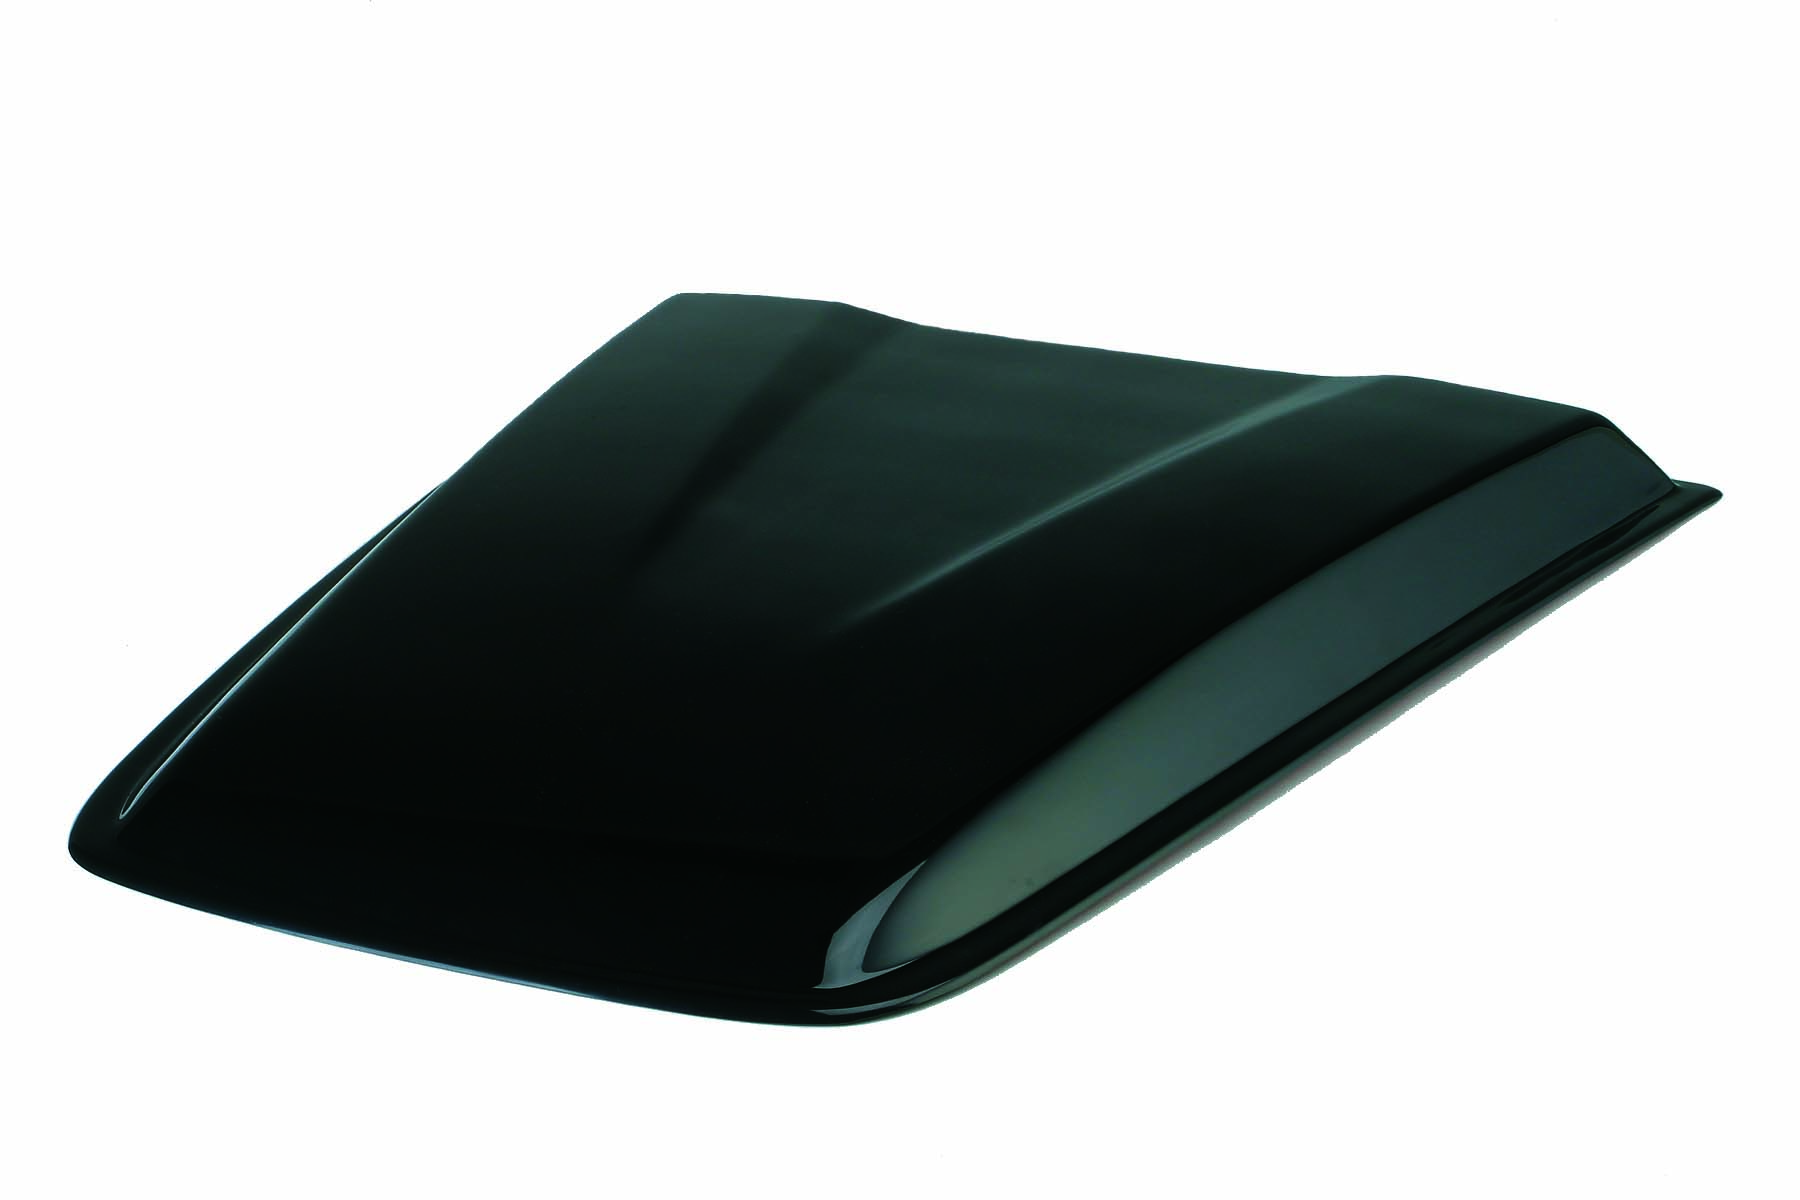 Cadillac Escalade 2002-2006 Ext Truck Cowl Induction Hood Scoop